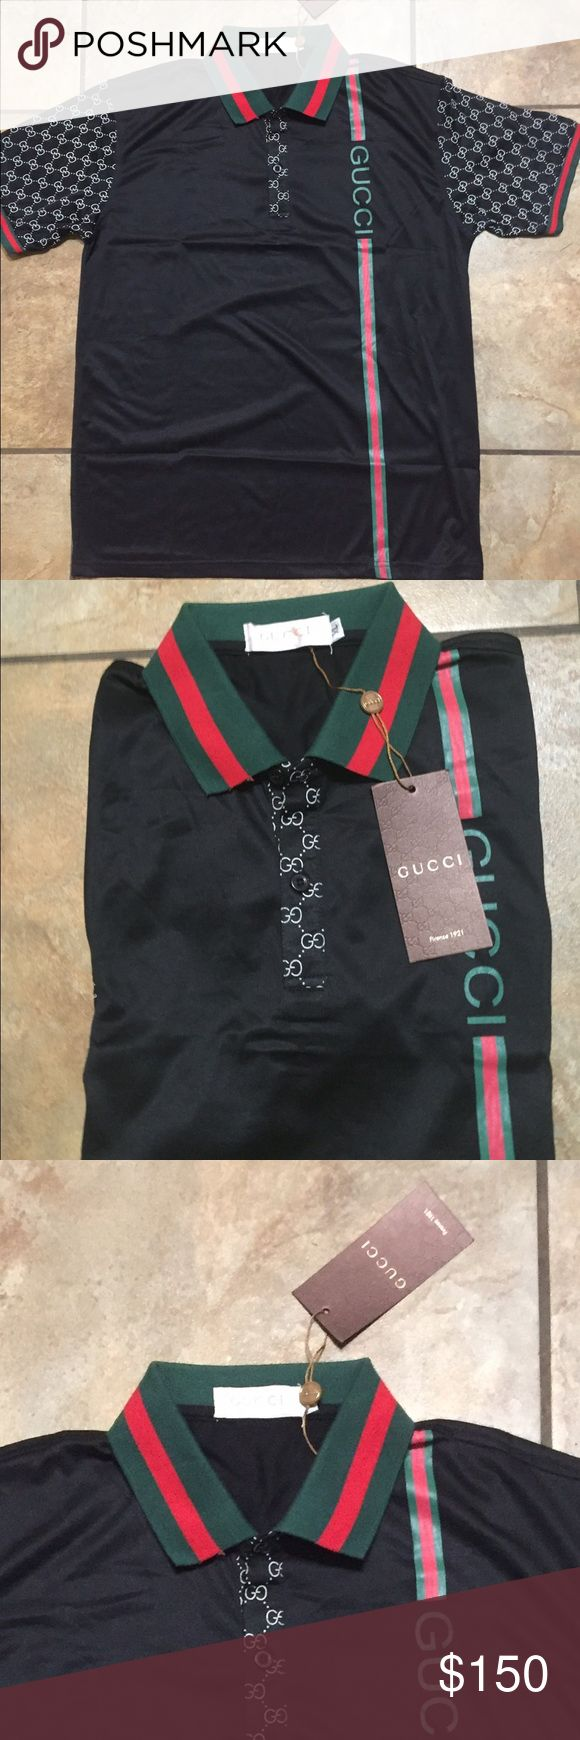 Gucci men's shirt authentic Nwt Gucci Shirts Polos